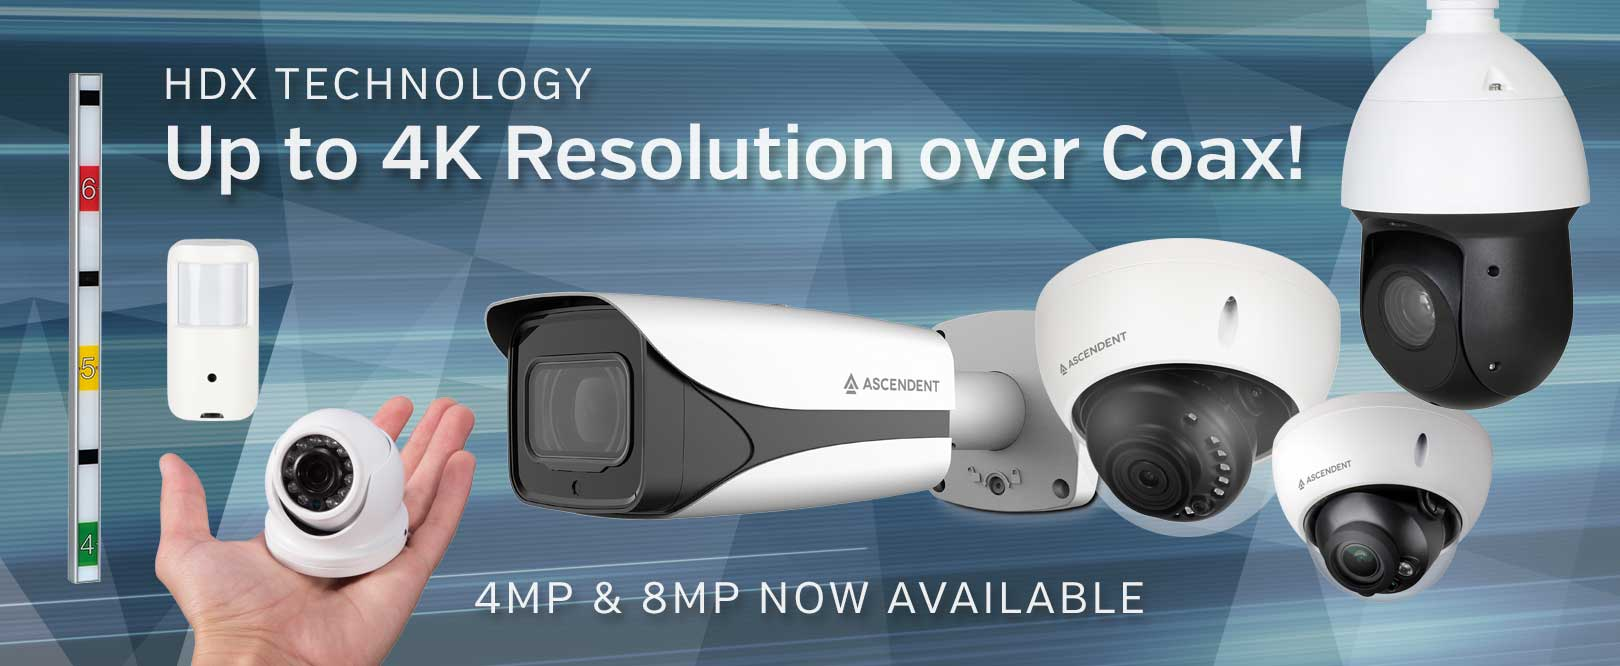 HDX Technology - Up to 4K Resolution over Coax! 4MP & 8MP Now Available